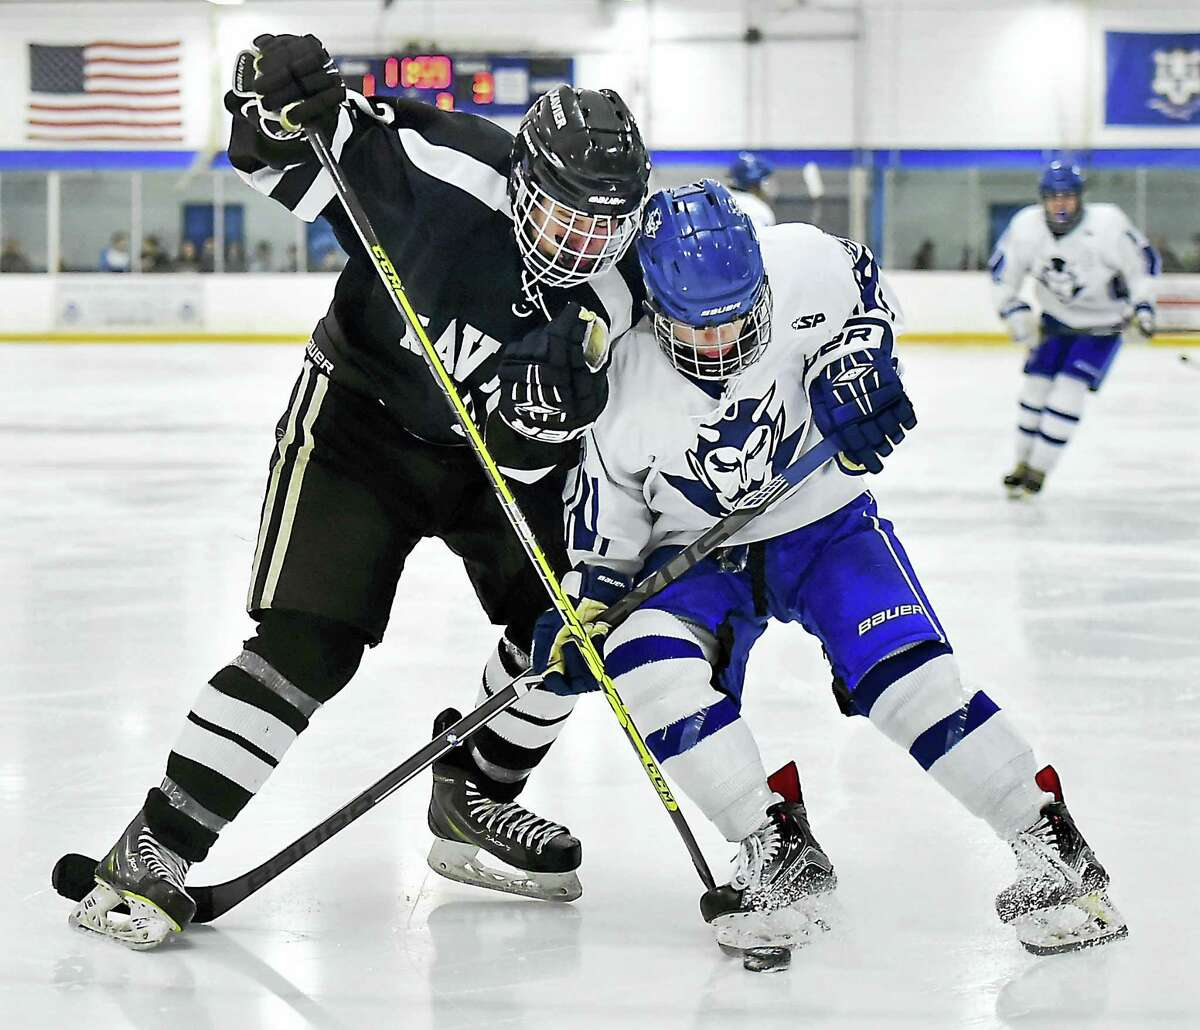 Xavier's Ryan Child (2) battles West Haven's Peter Richetelli for the possession Wednesday at the West Haven High School Christmas Tournament at the Edward L. Bennett Rink. Xavier won, 5-2.